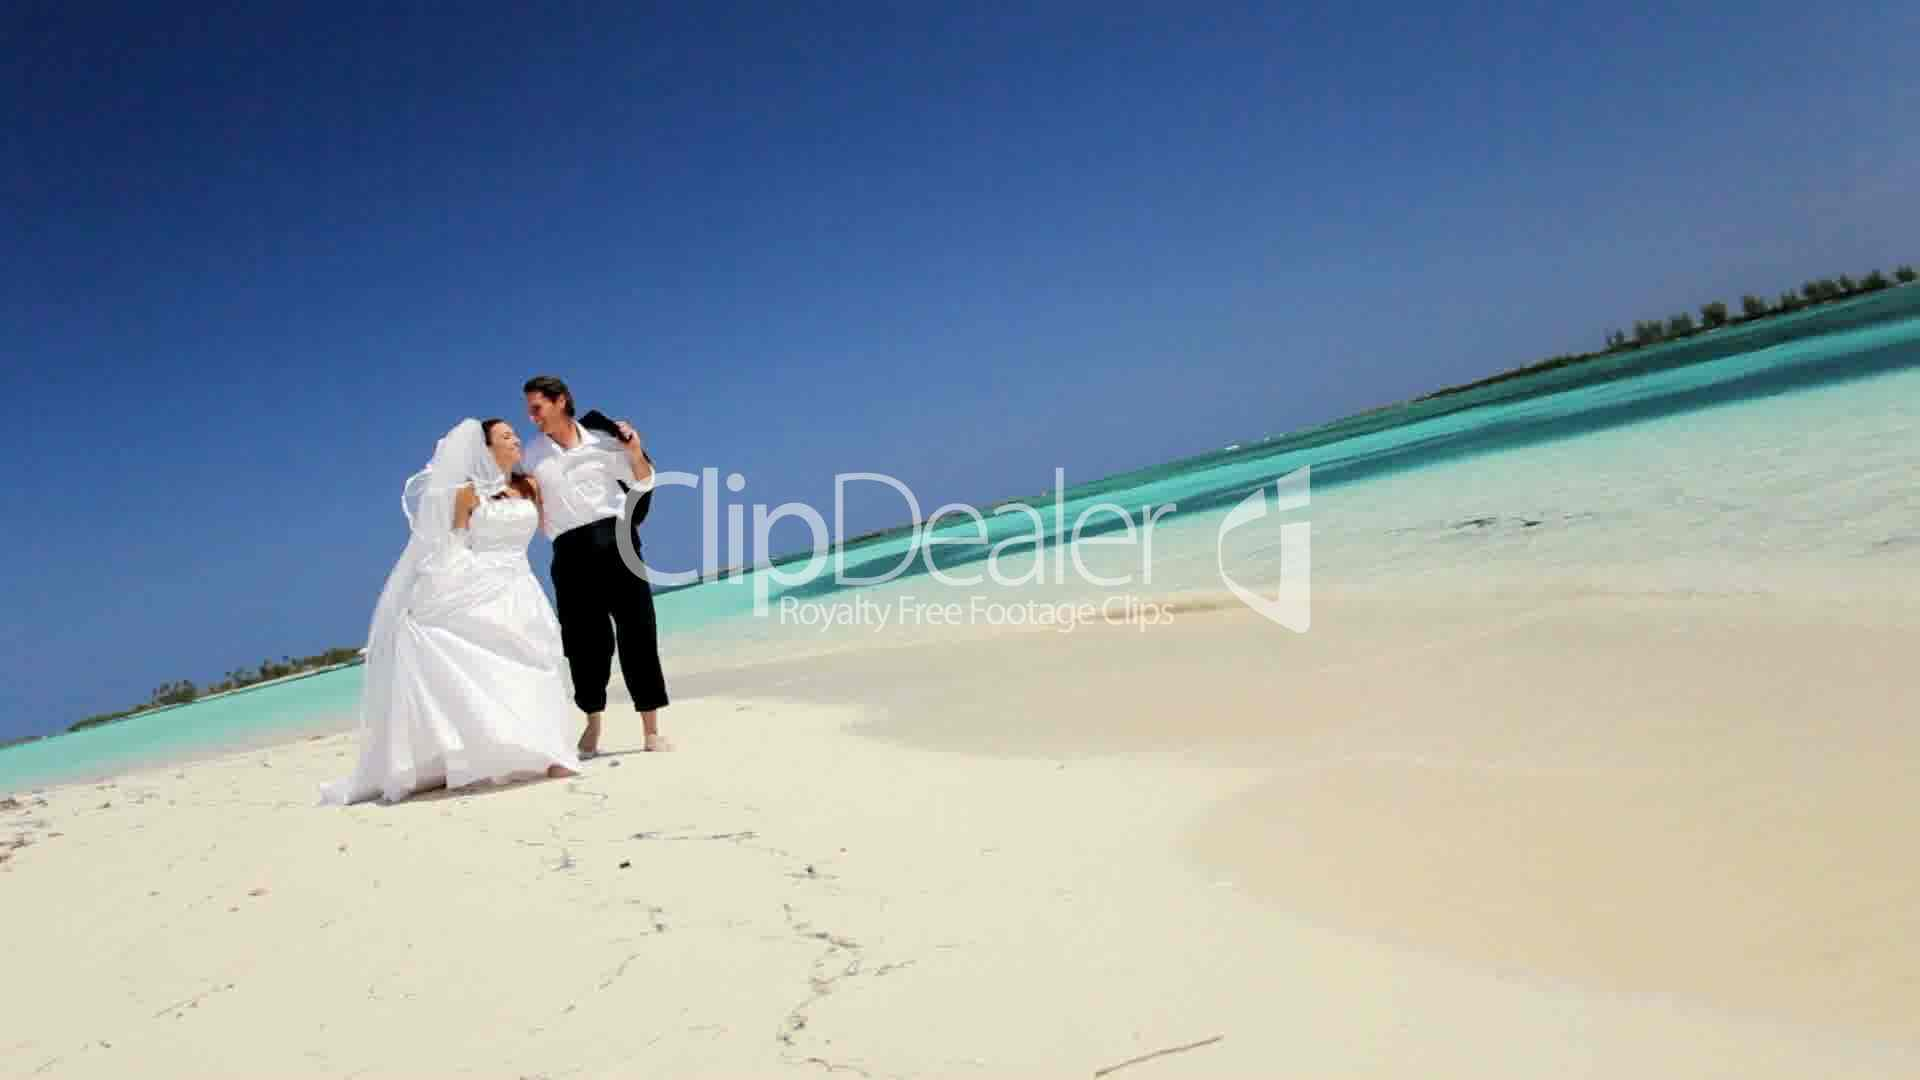 Barefoot Beach Wedding Couple: Royalty-free video and stock footage